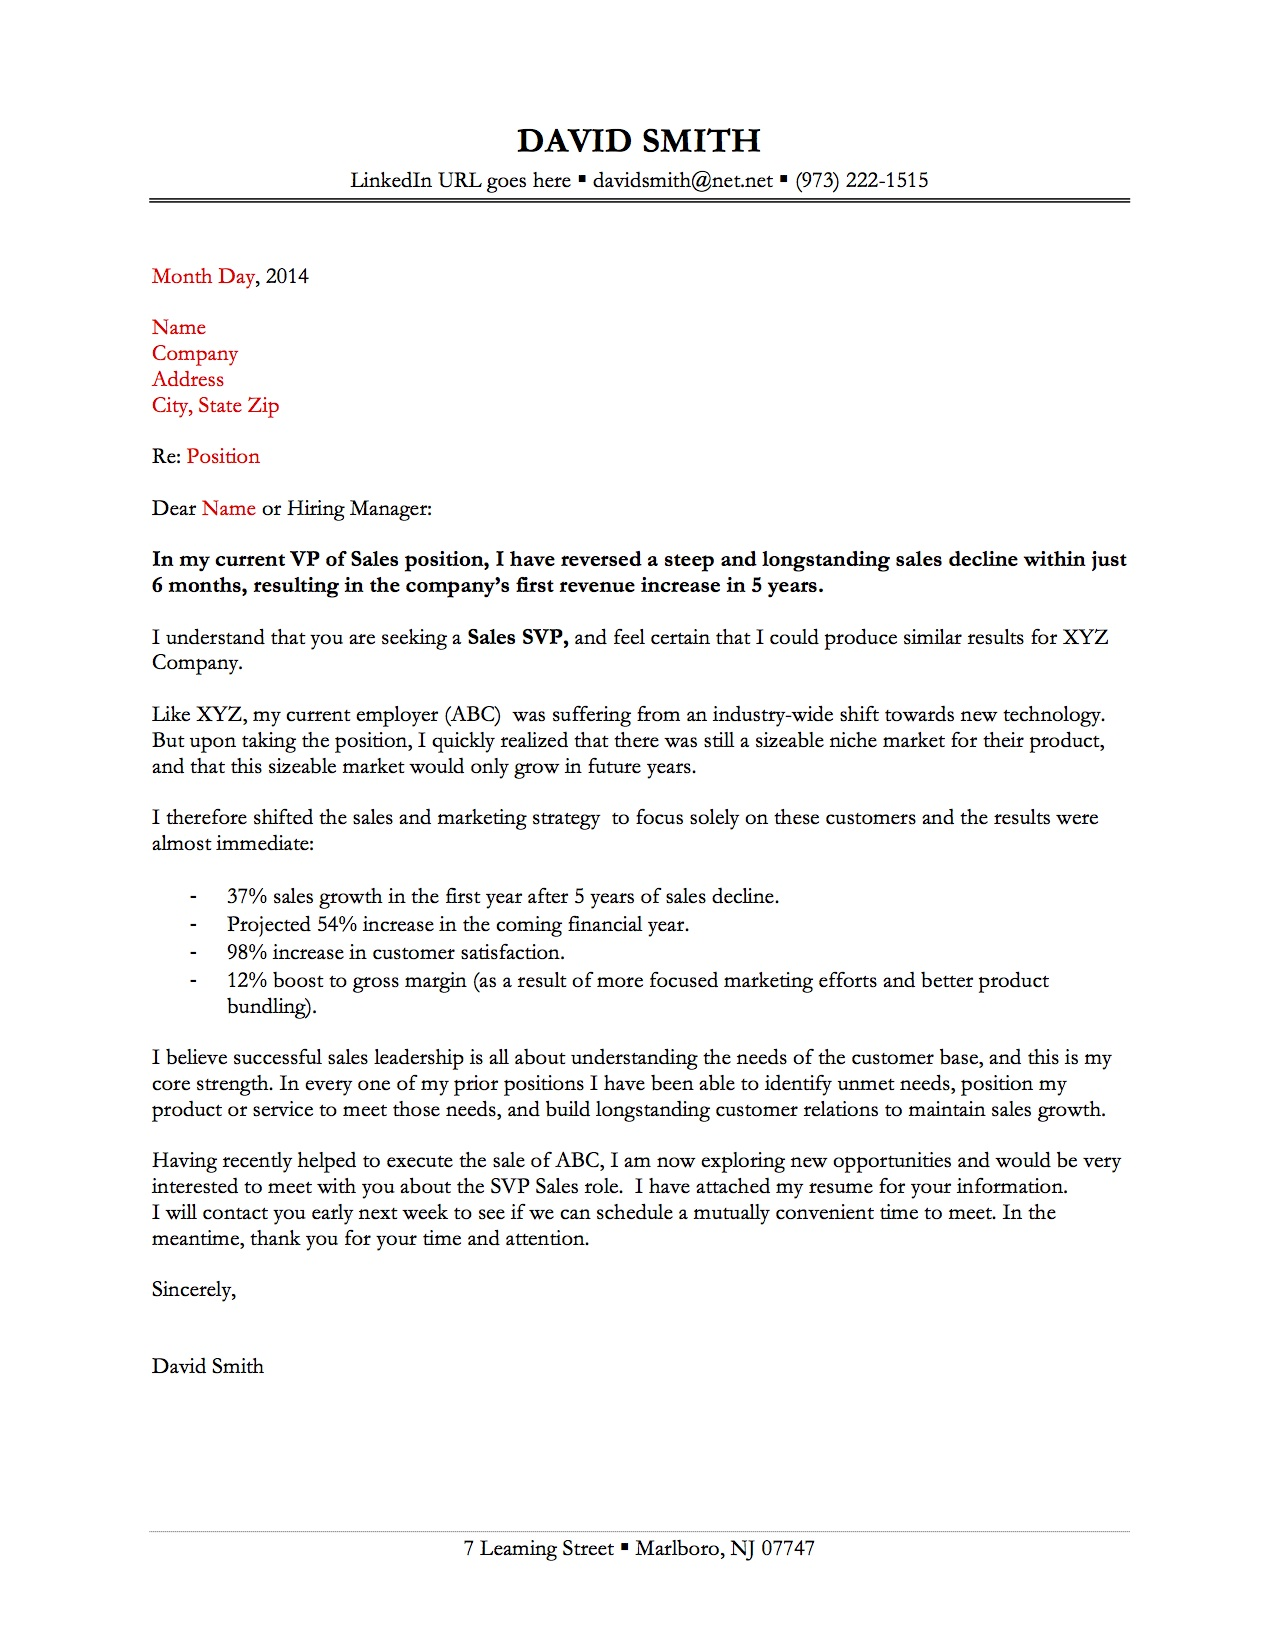 Sample Cover Letter 2  Examples Of Cover Letters For Customer Service